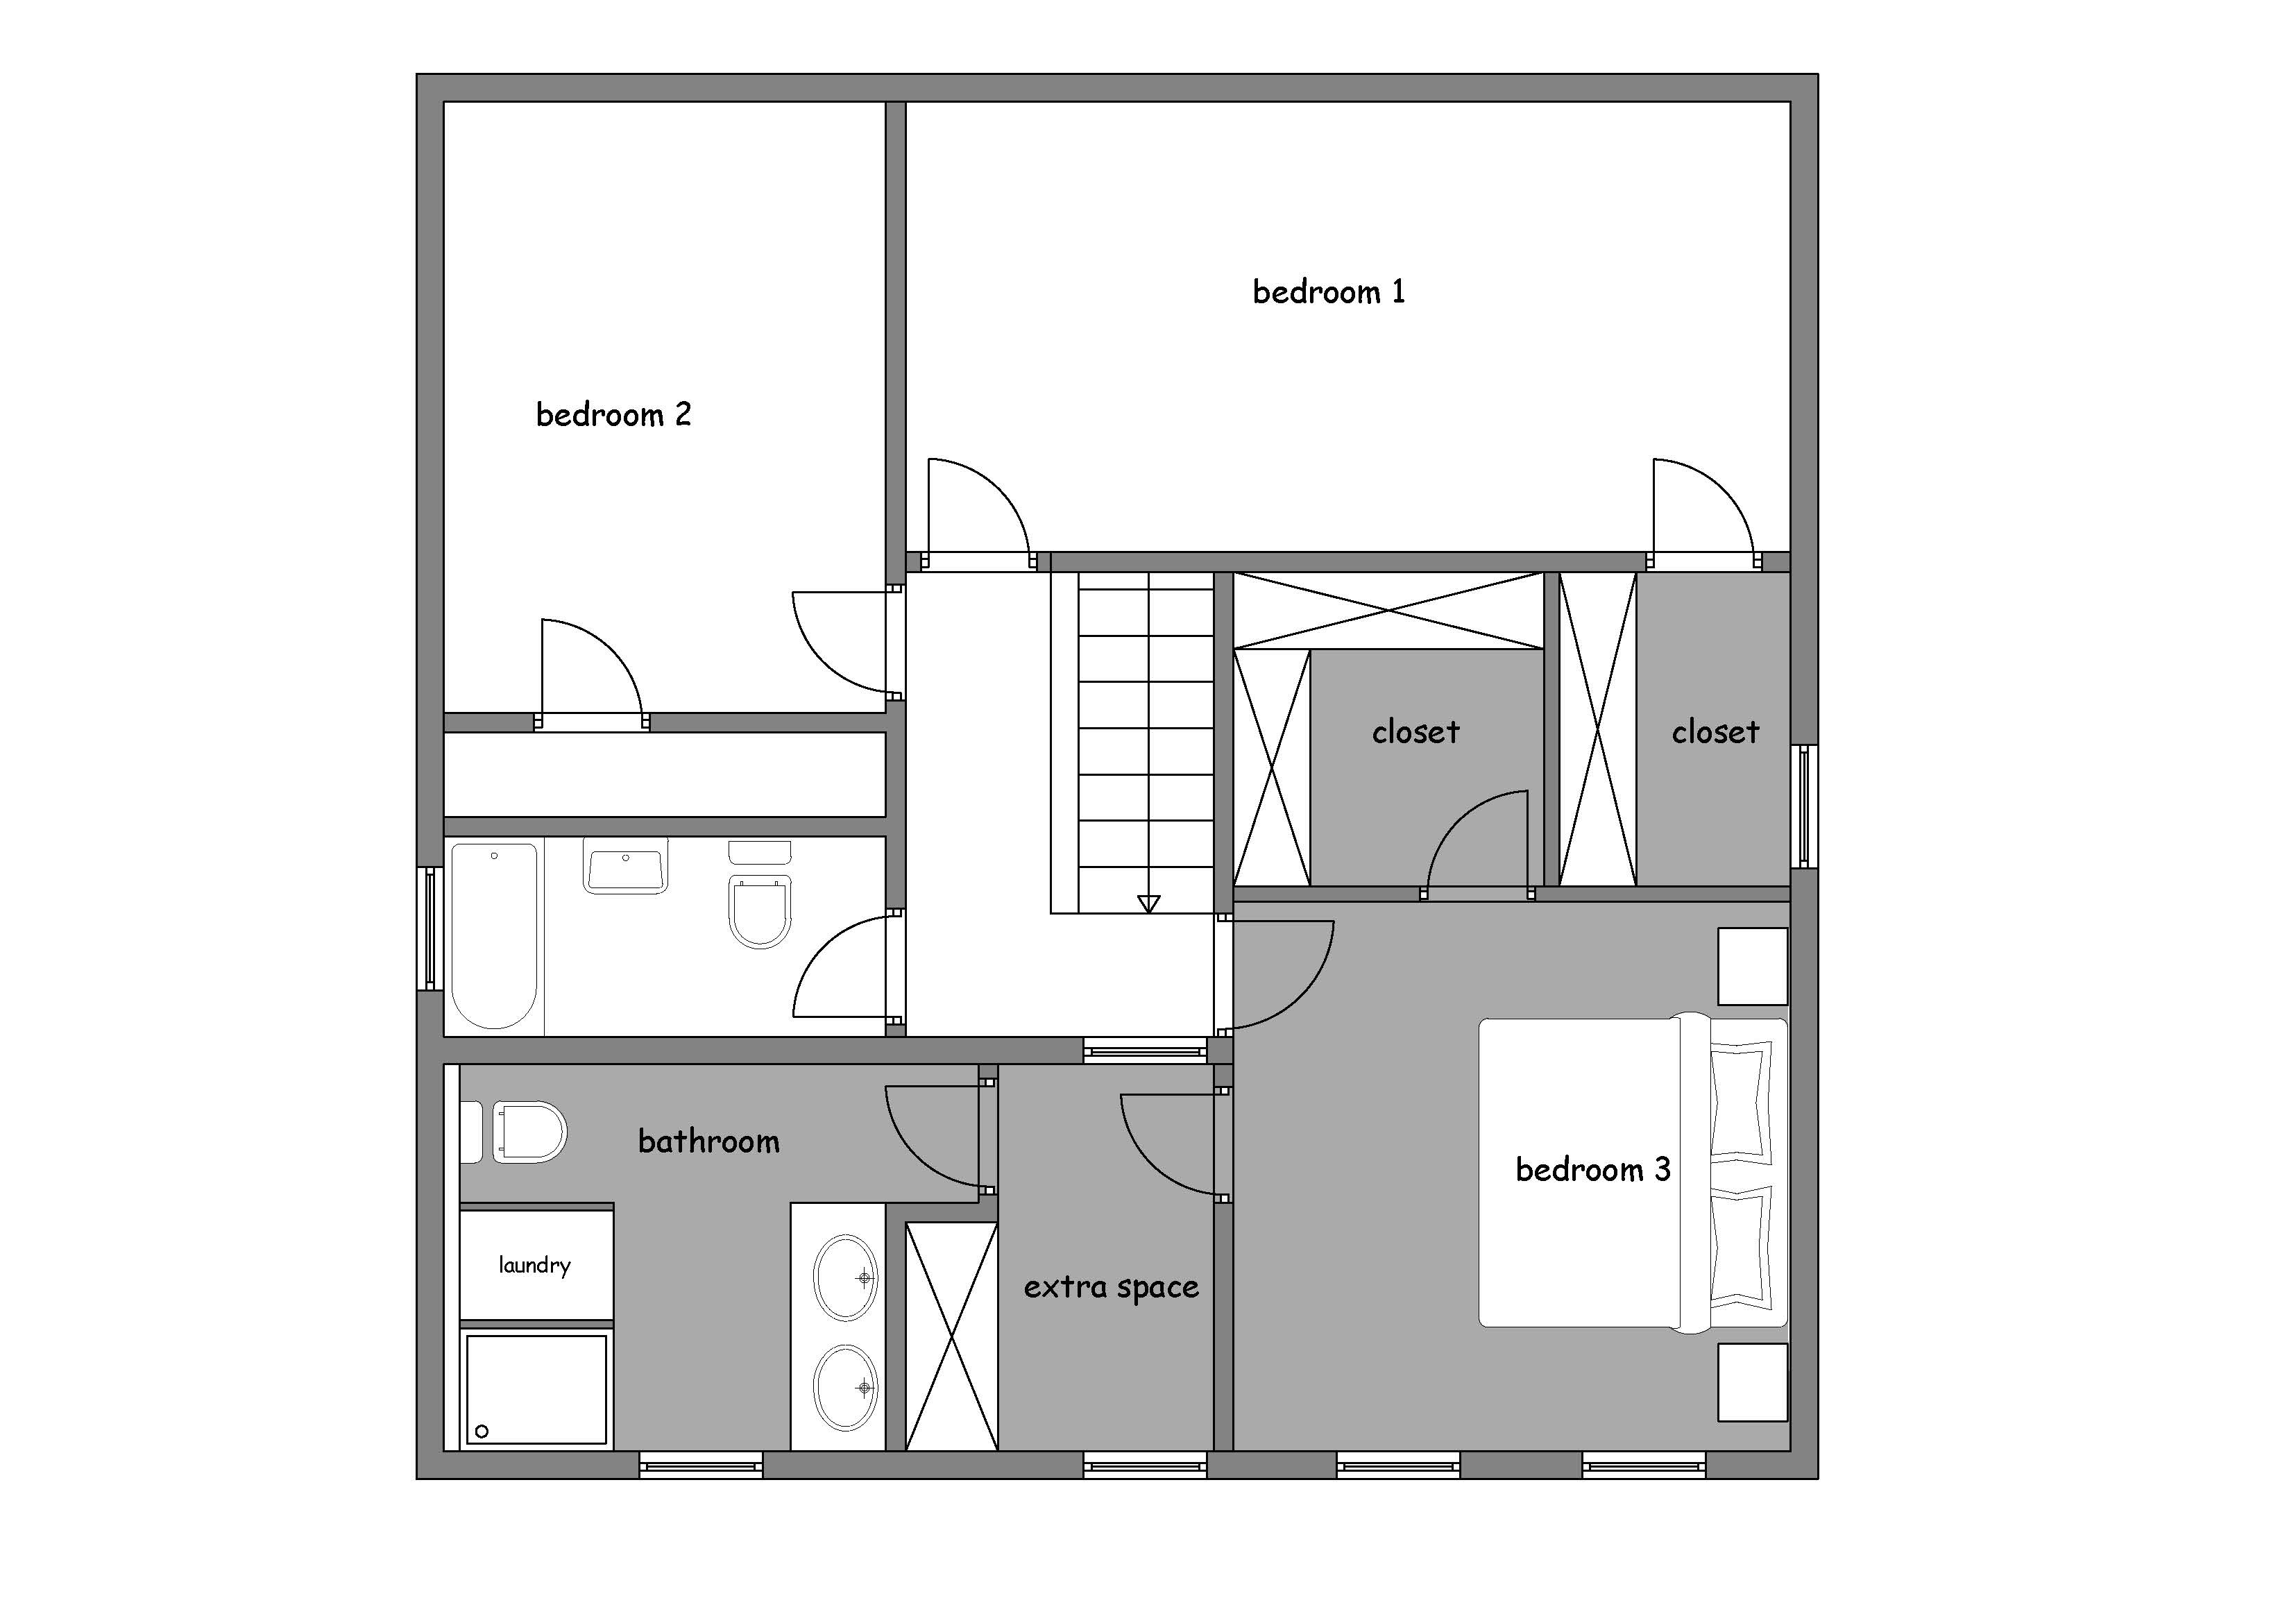 lady master suite addition floor plans minneapolis us arcbazar